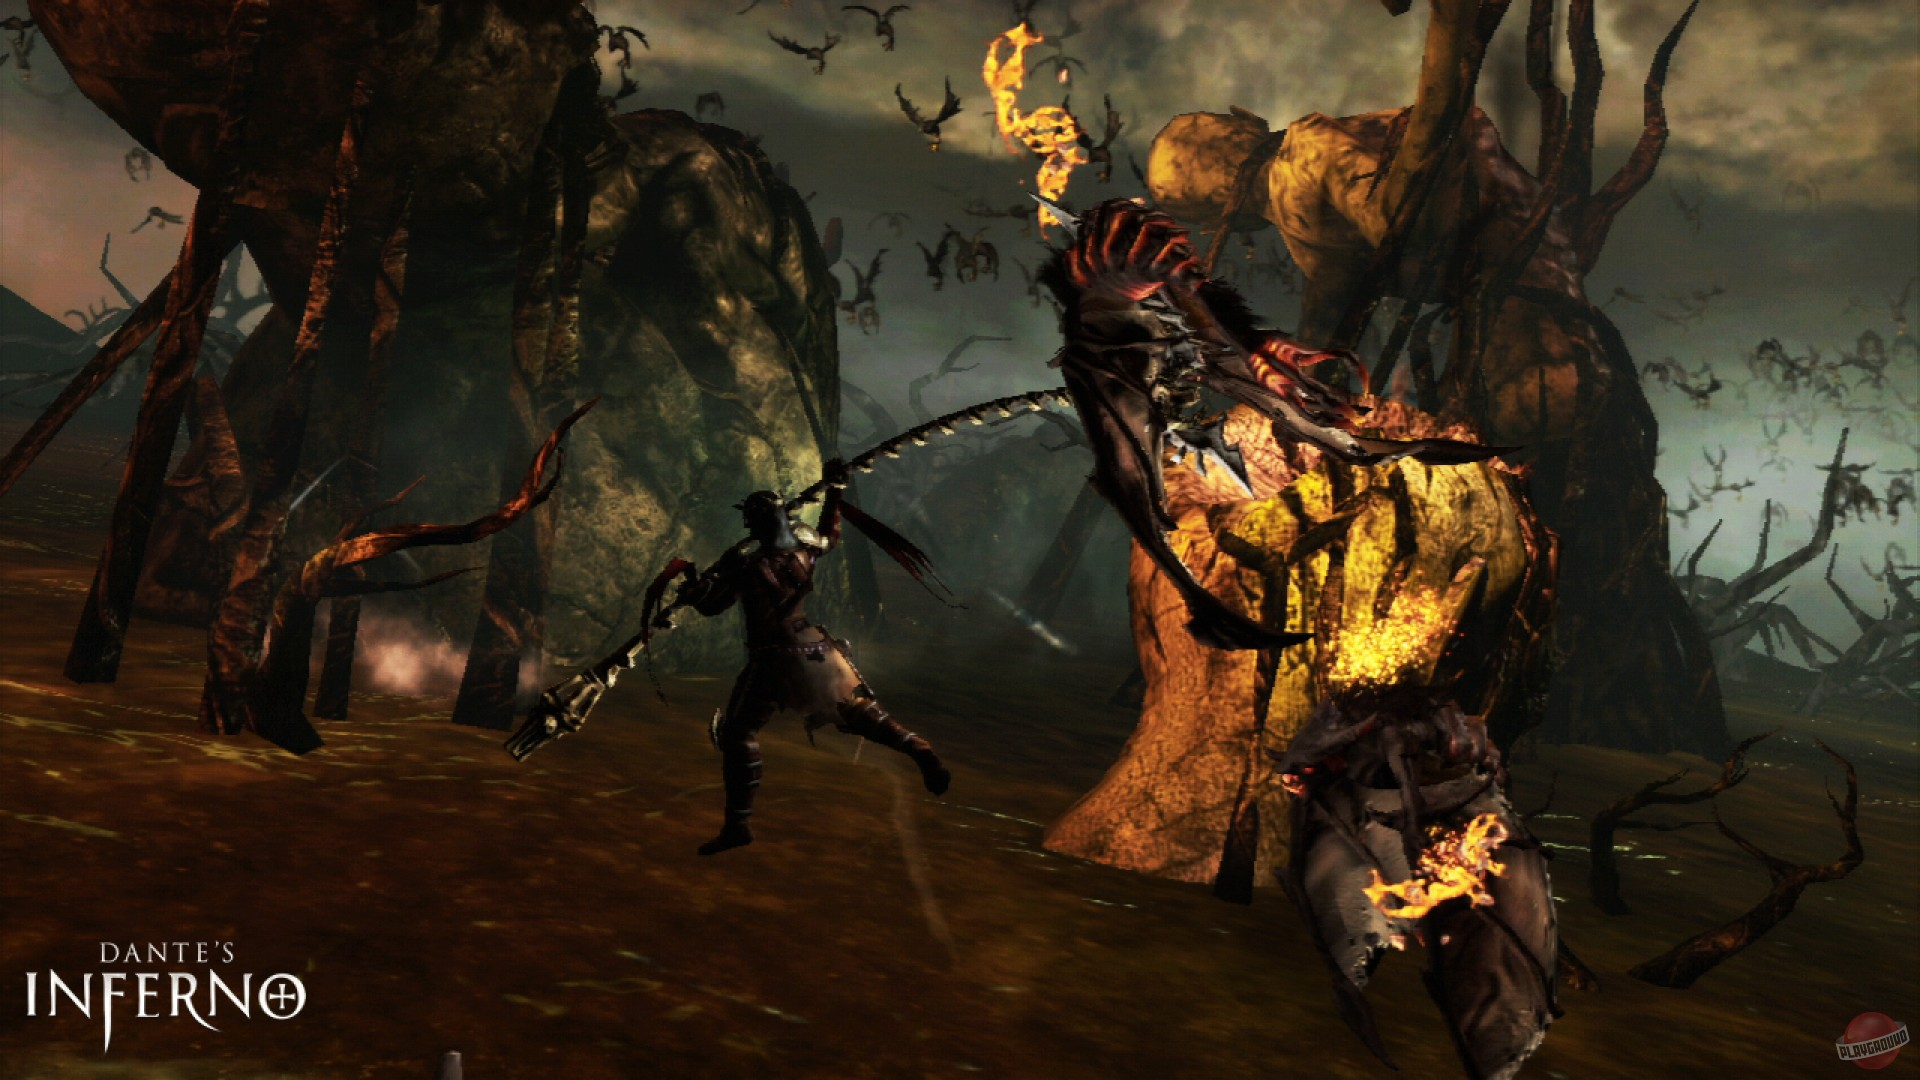 dantes inferno 3 Dante's inferno is an adventure video game with more action developed by visceral games and published by electronic arts for both the xbox 360 and playstation 3 consoles it was also released.